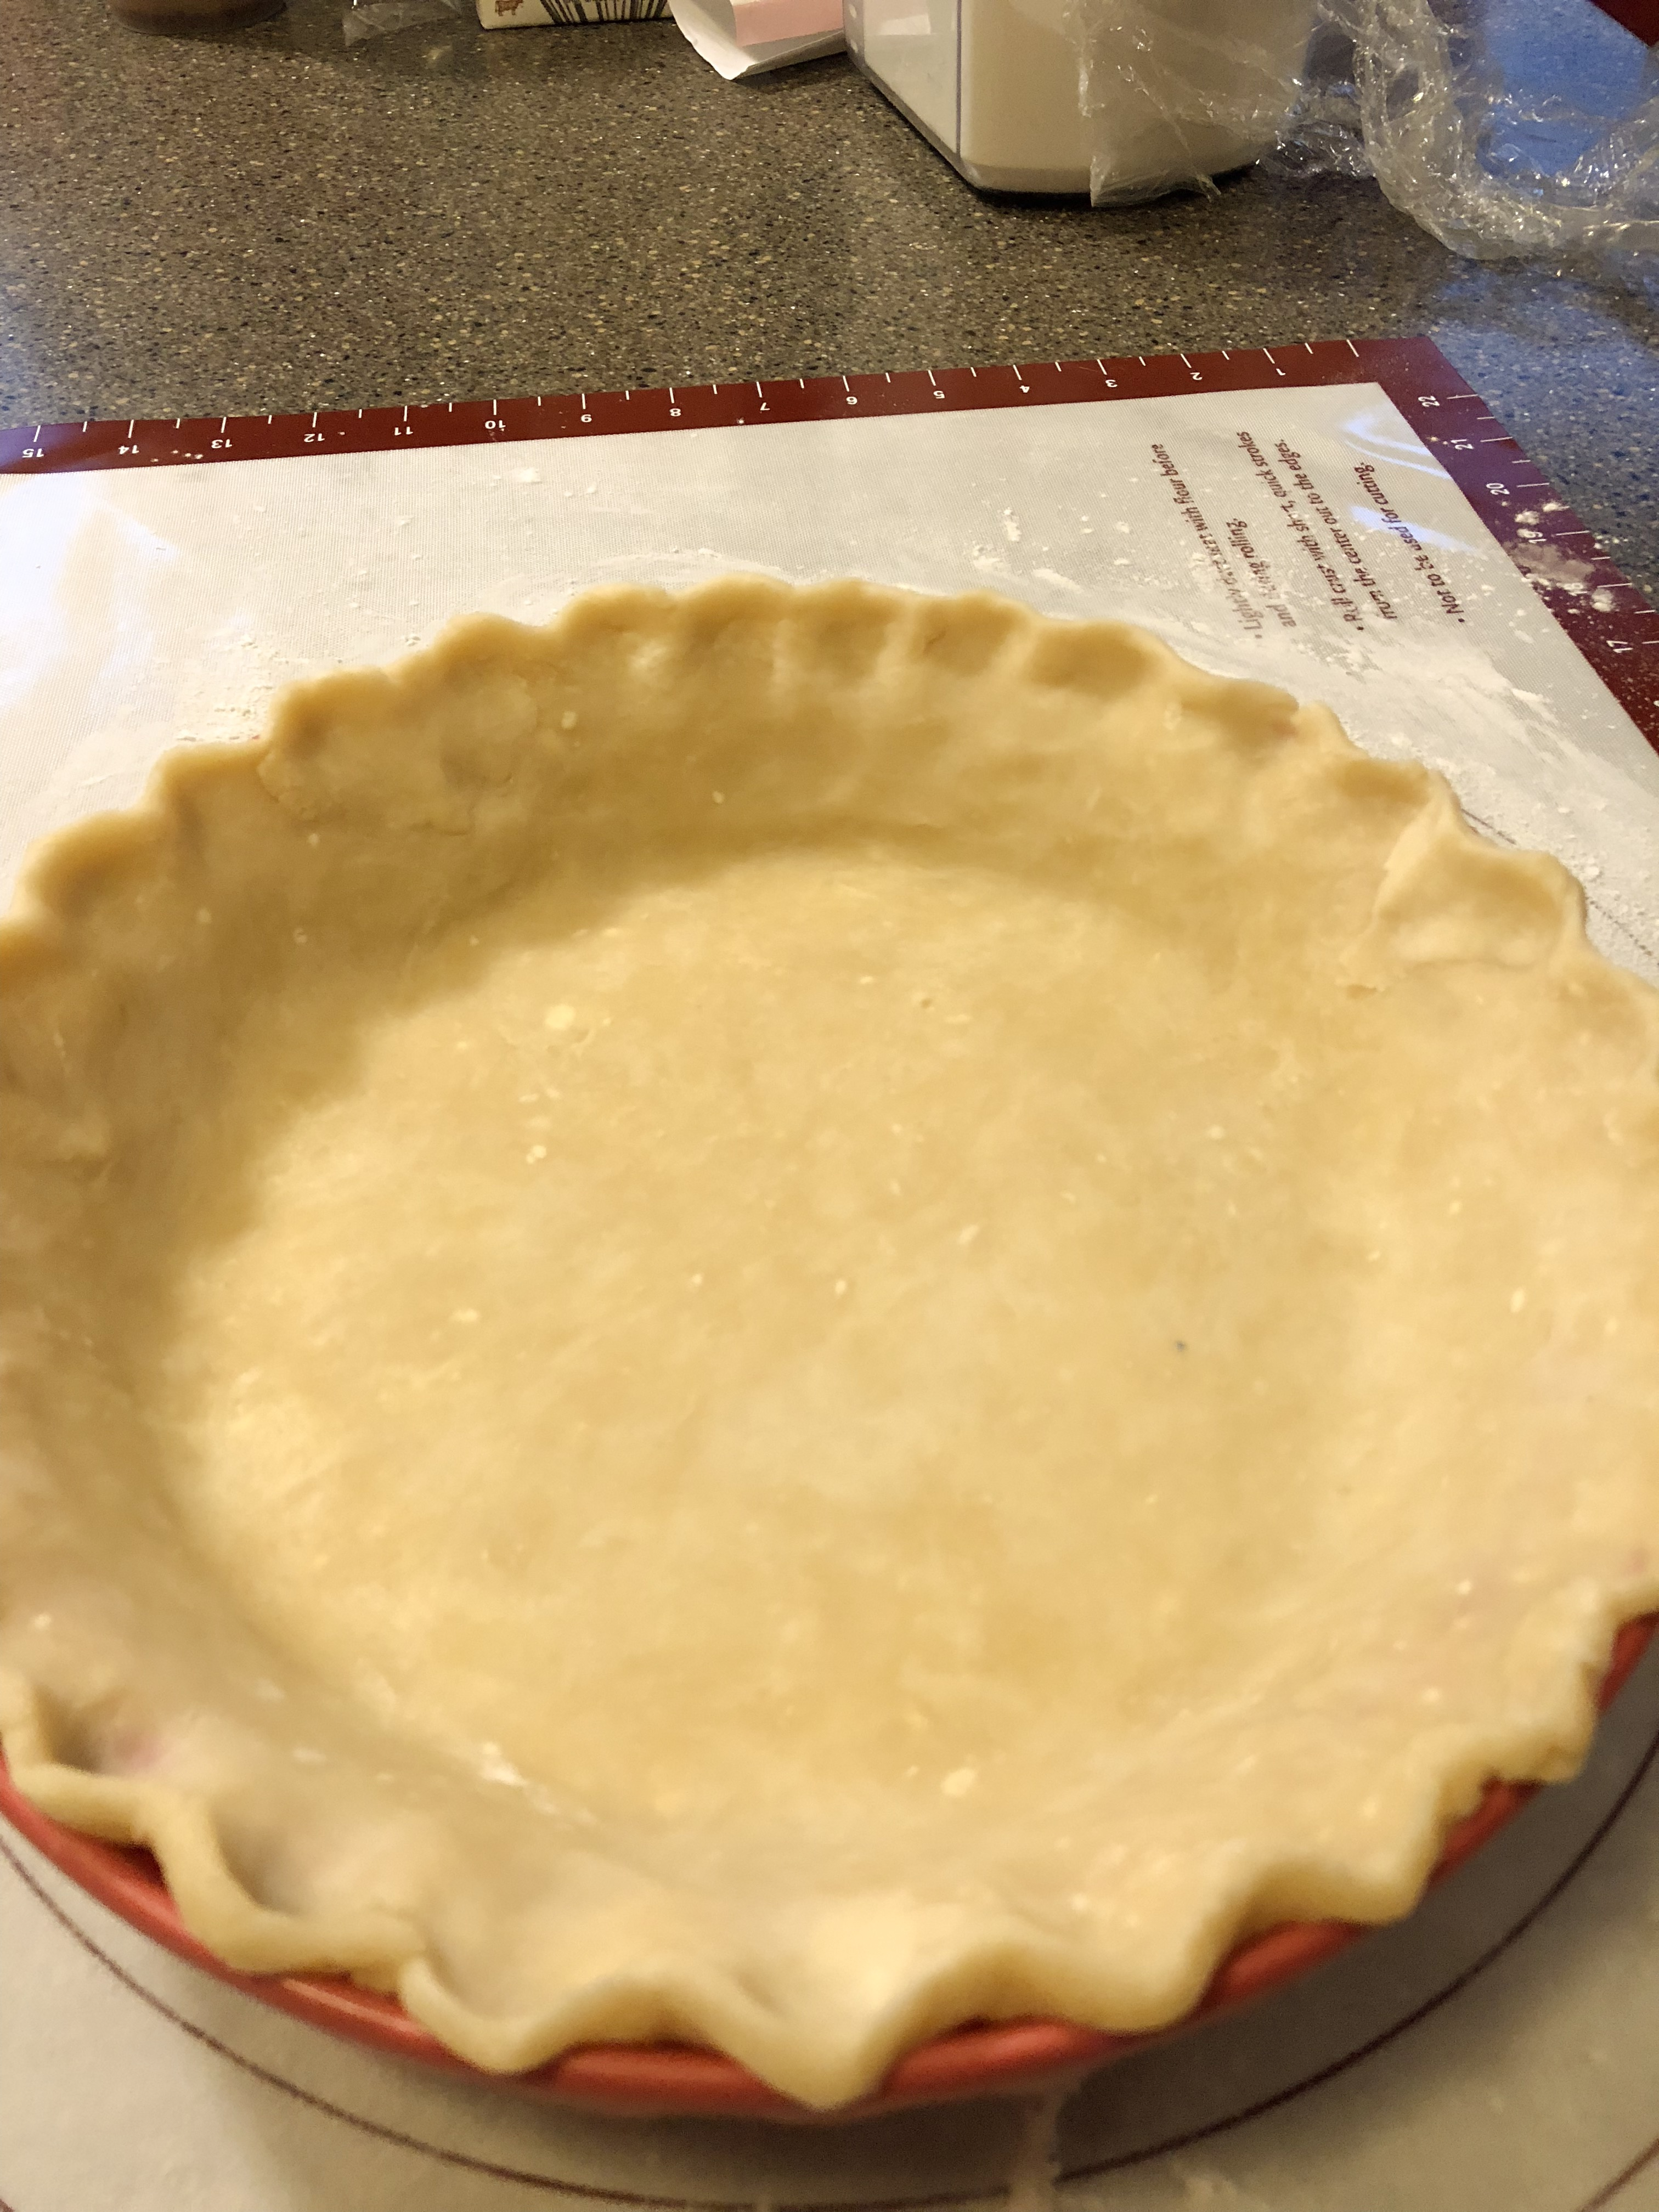 pie crust in pan with crimped edges